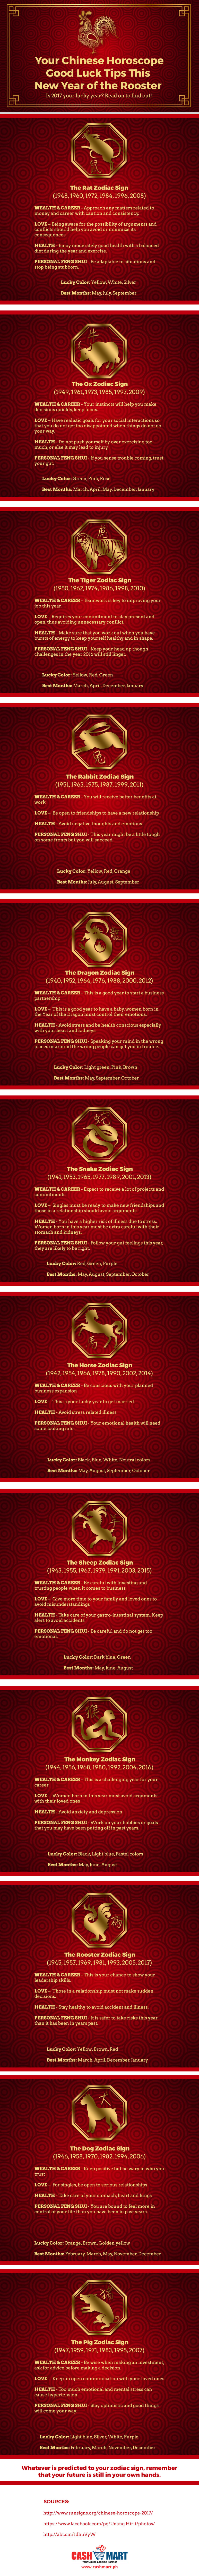 your-chinese-horoscope-good-luck-tips-this-new-year-of-the-rooster